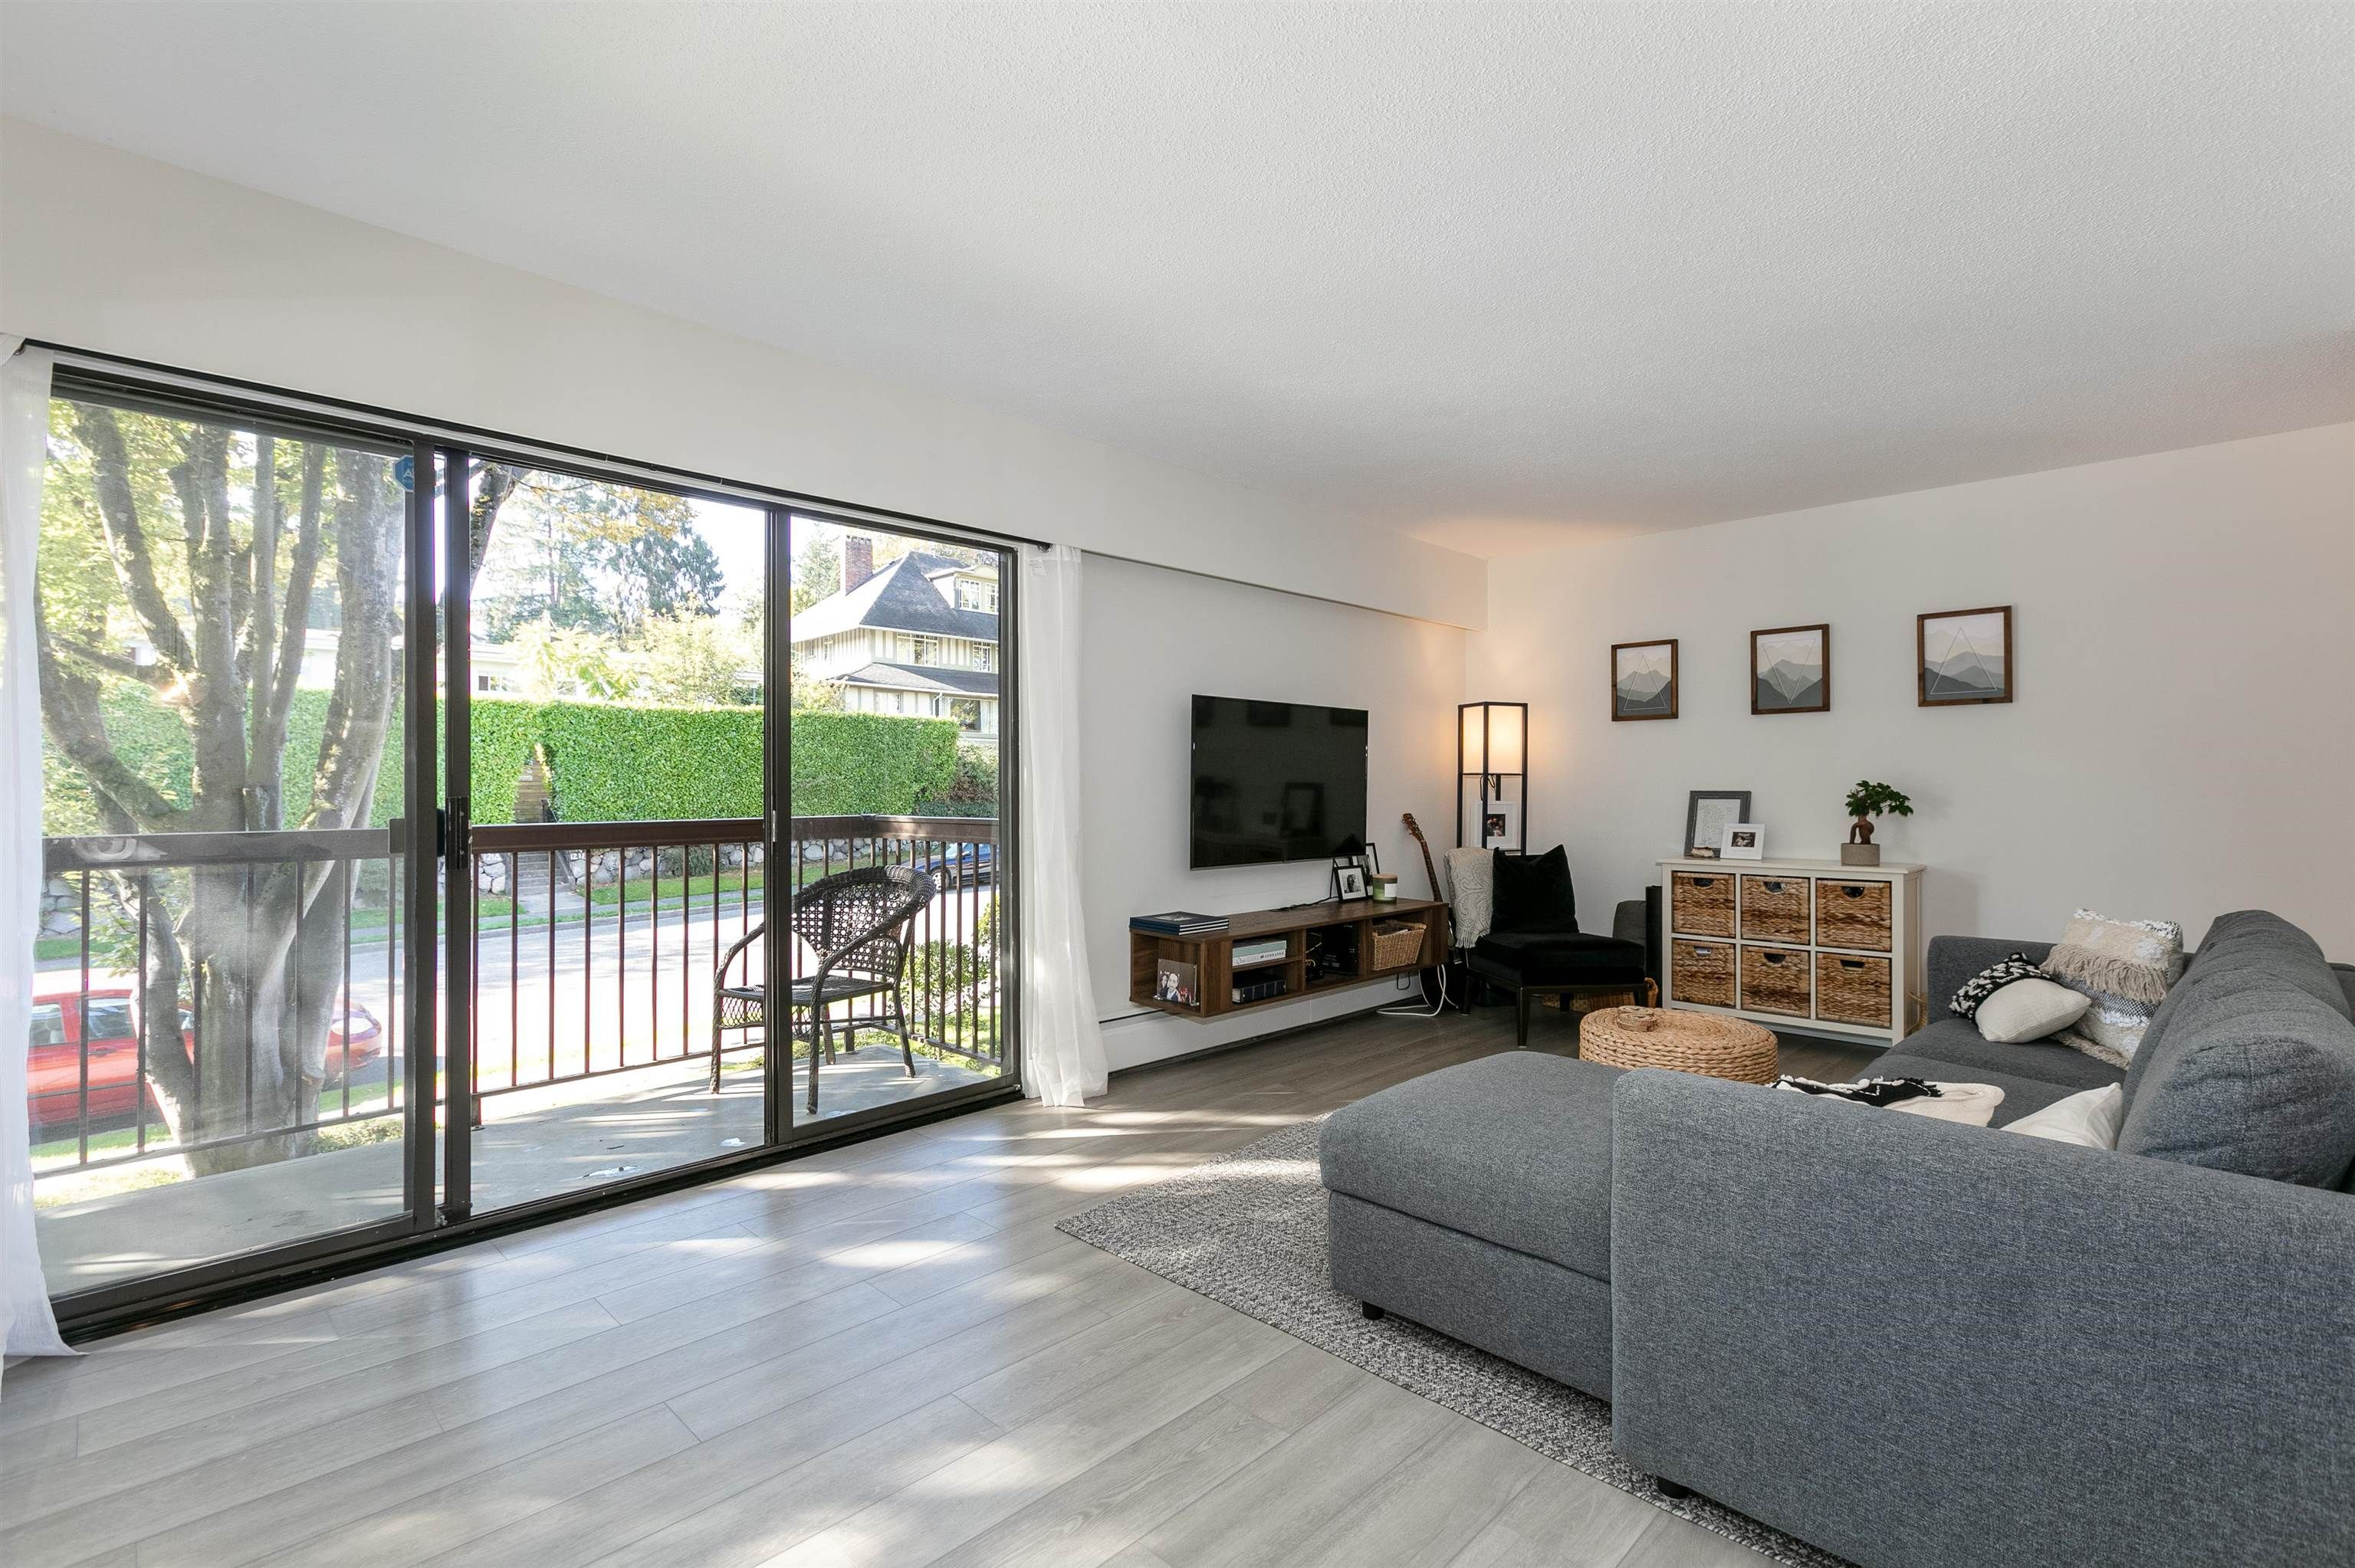 """Main Photo: 215 1235 W 15TH Avenue in Vancouver: Fairview VW Condo for sale in """"THE SHAUGHNESSY"""" (Vancouver West)  : MLS®# R2620971"""